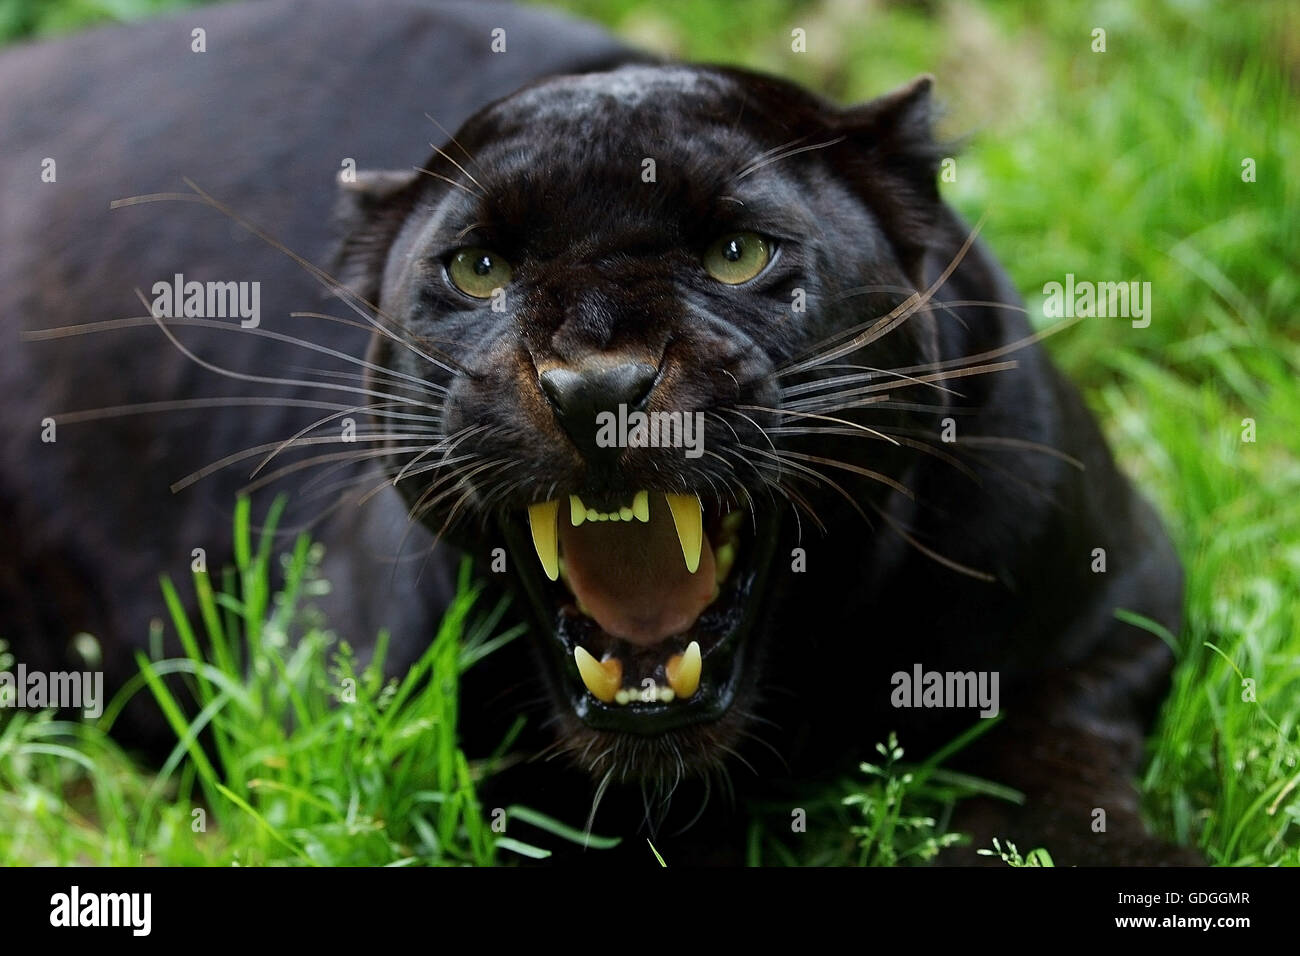 Black Panther Panthera Pardus Adult Snarling In